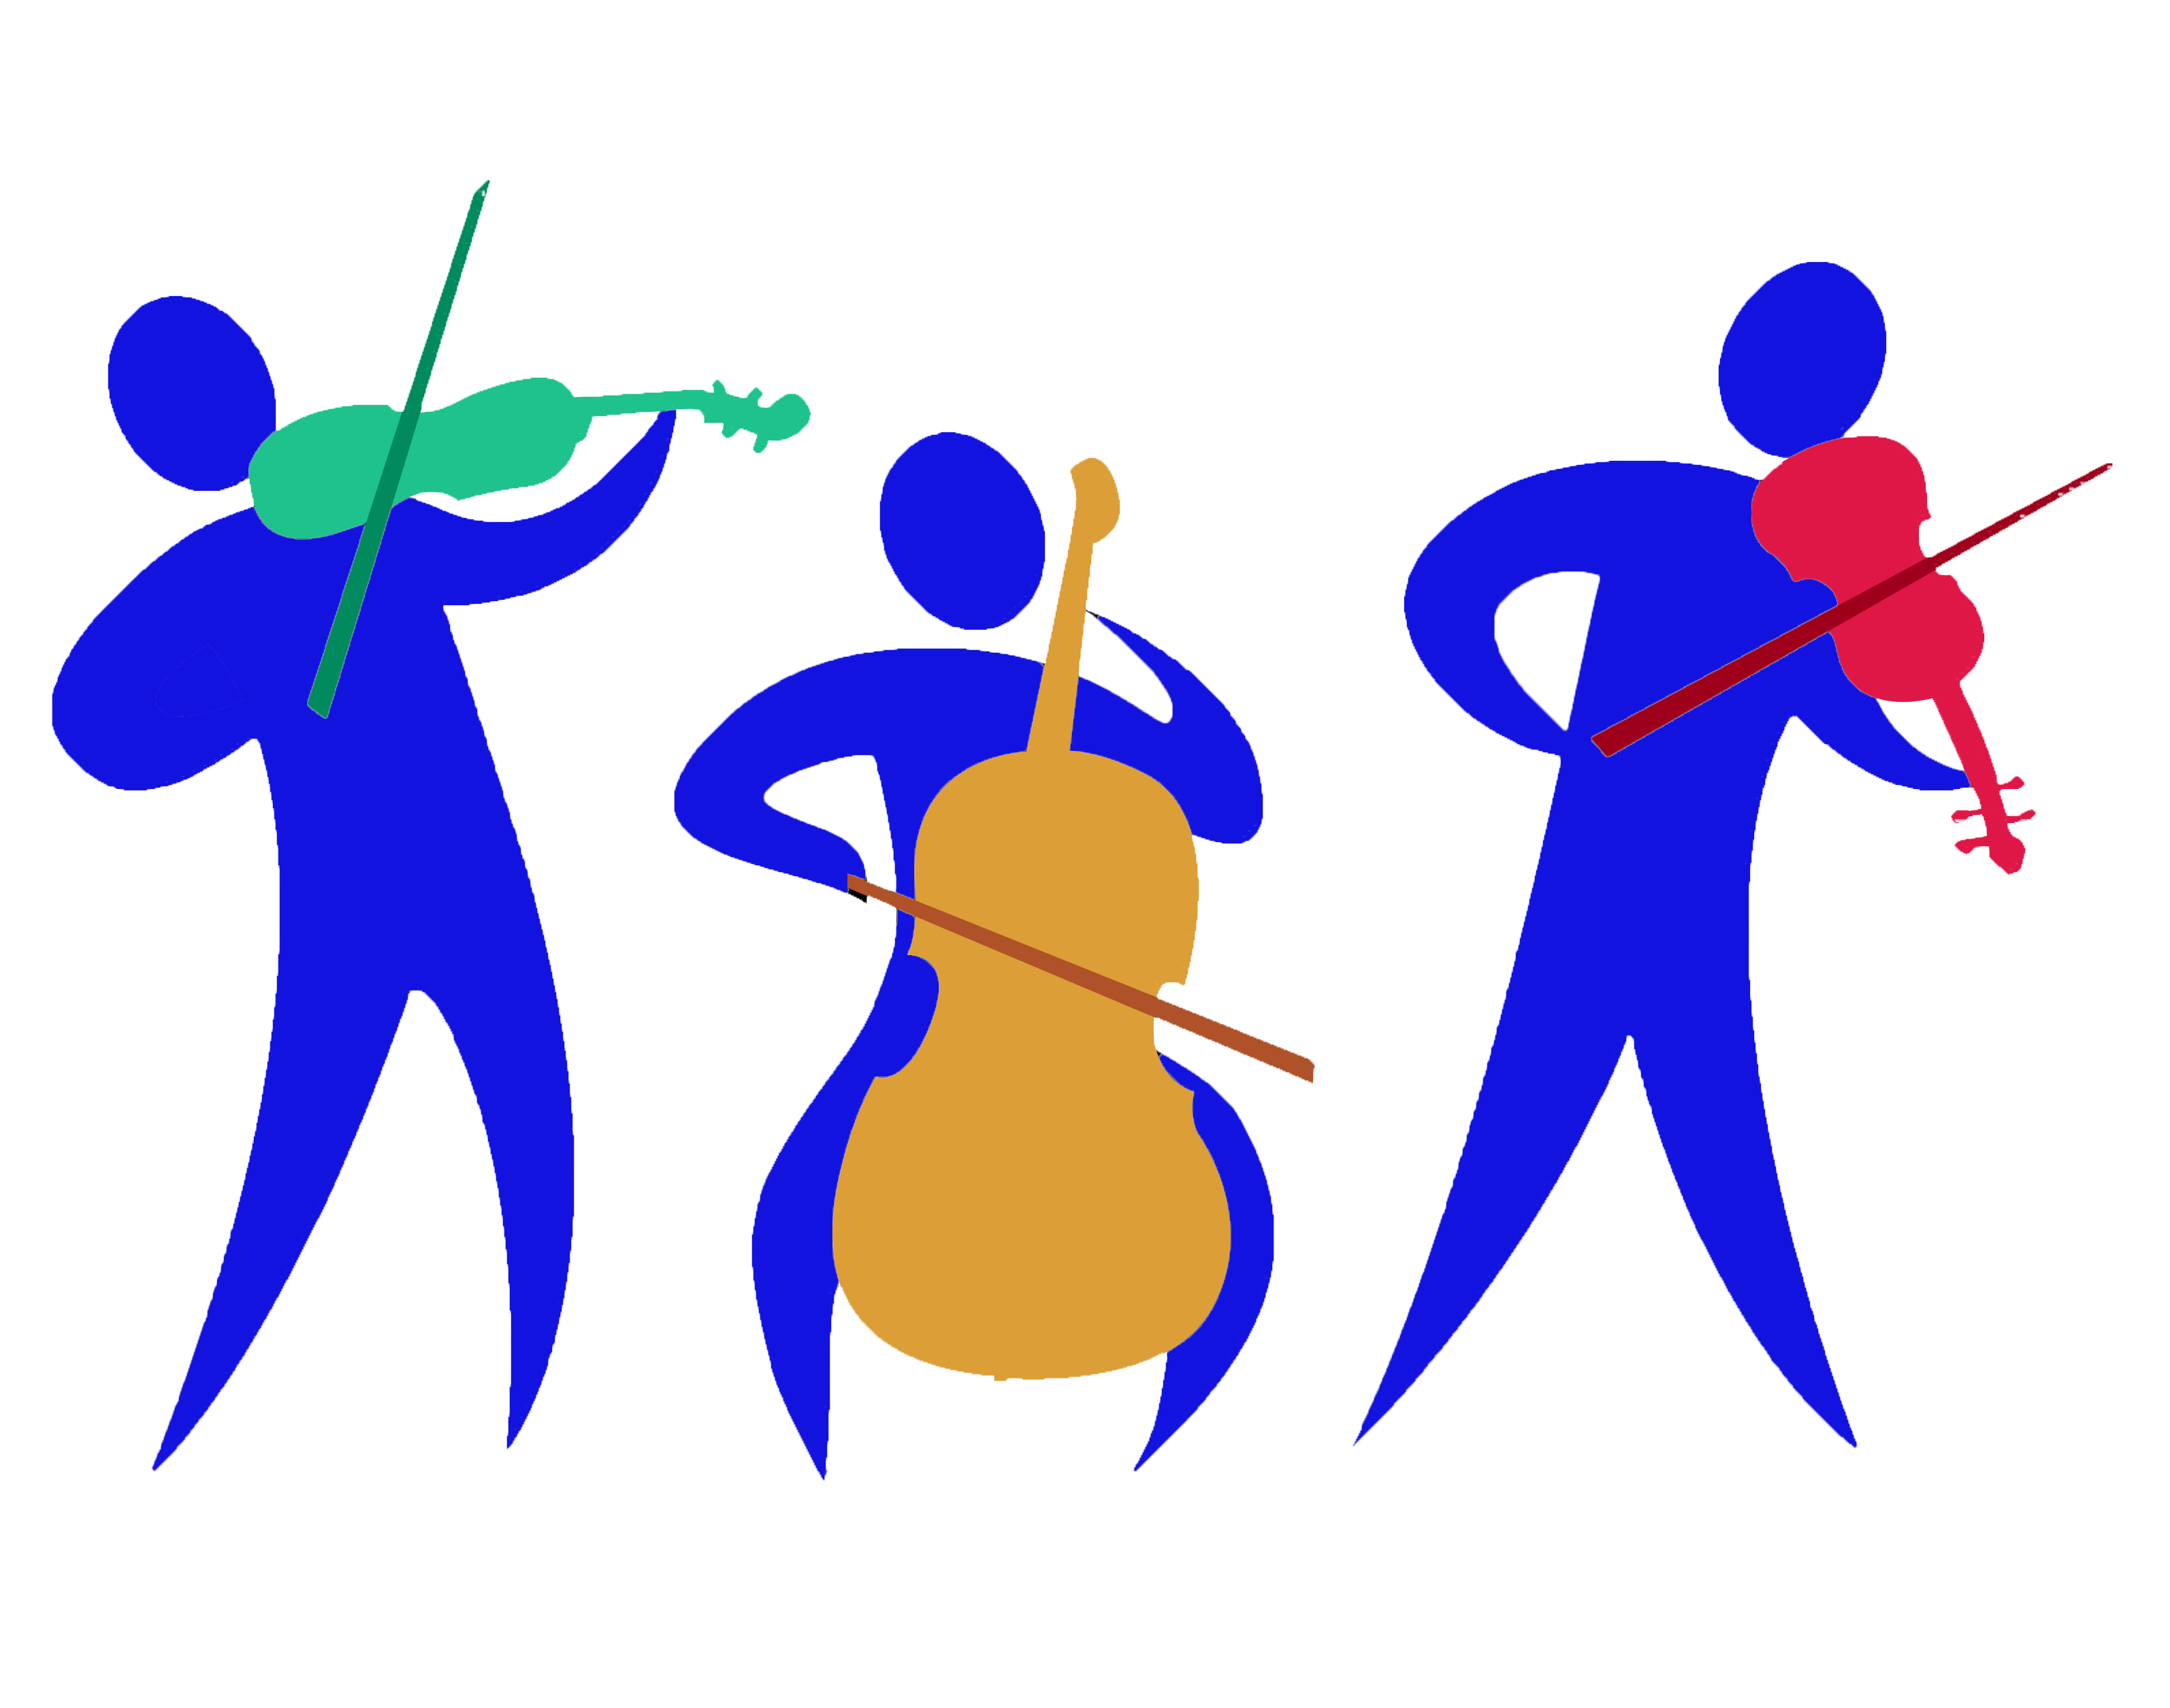 Orchestra clipart. At getdrawings com free